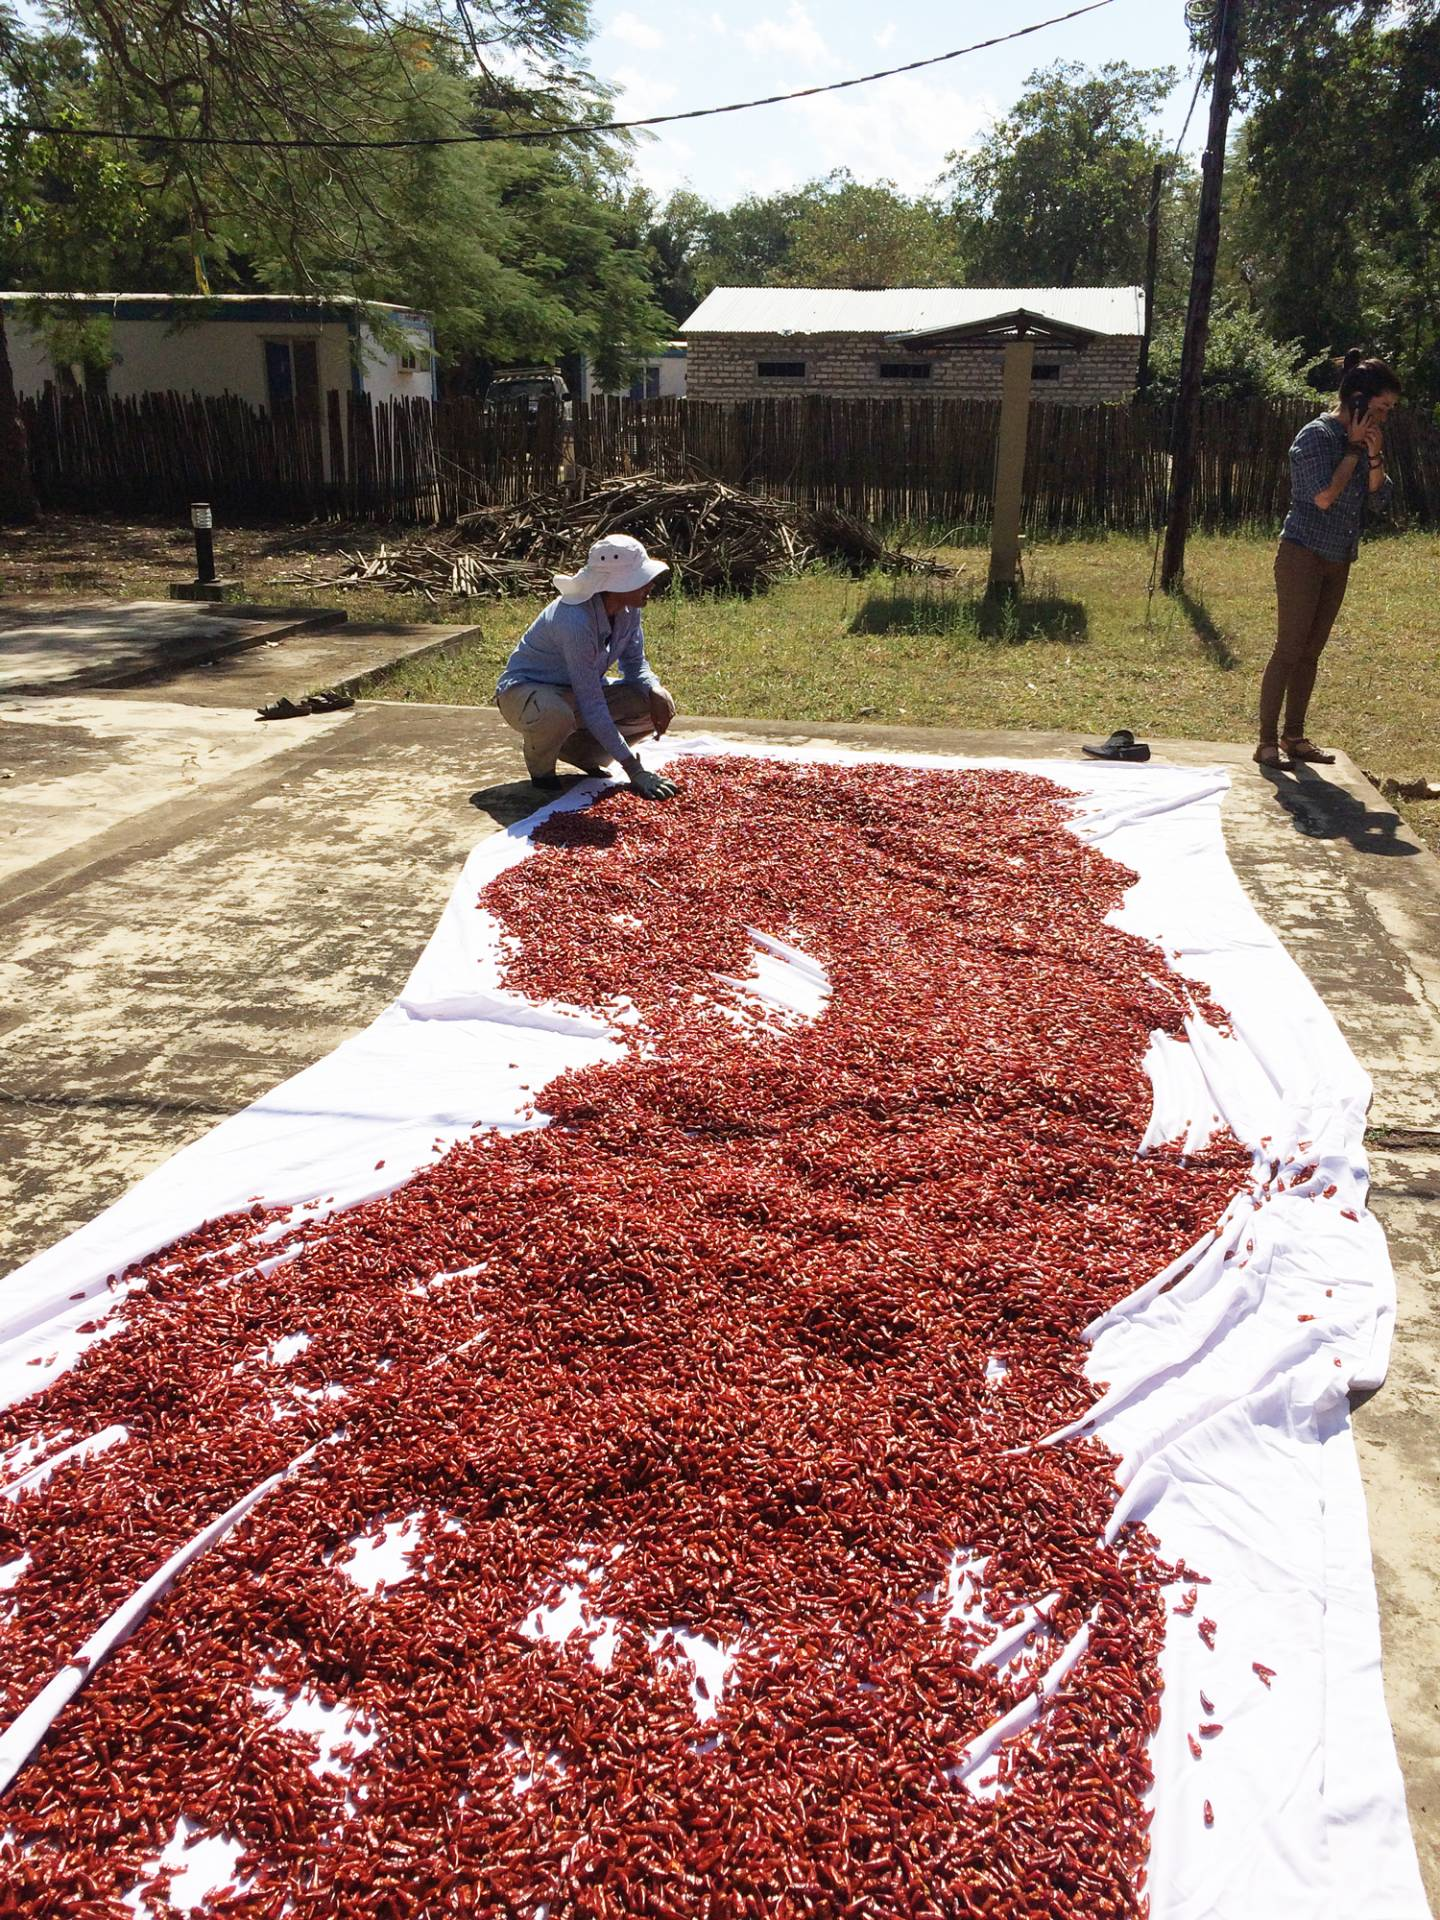 A tarp covered in chili papers is laid out